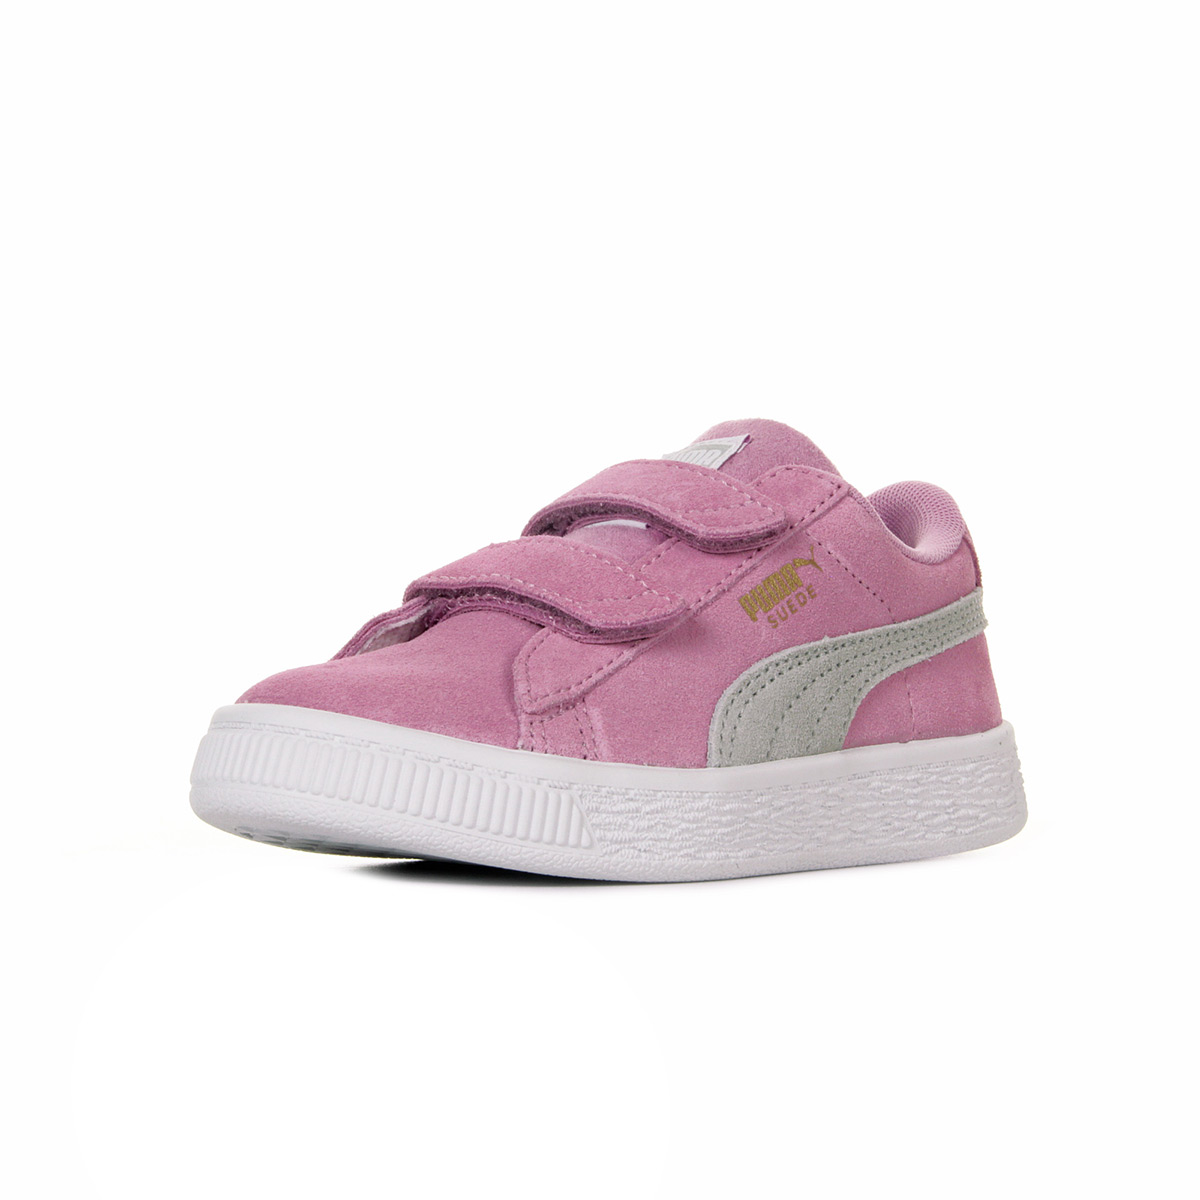 4a5d02c97f Puma Suede Classic V PS 36507519, Baskets mode fille